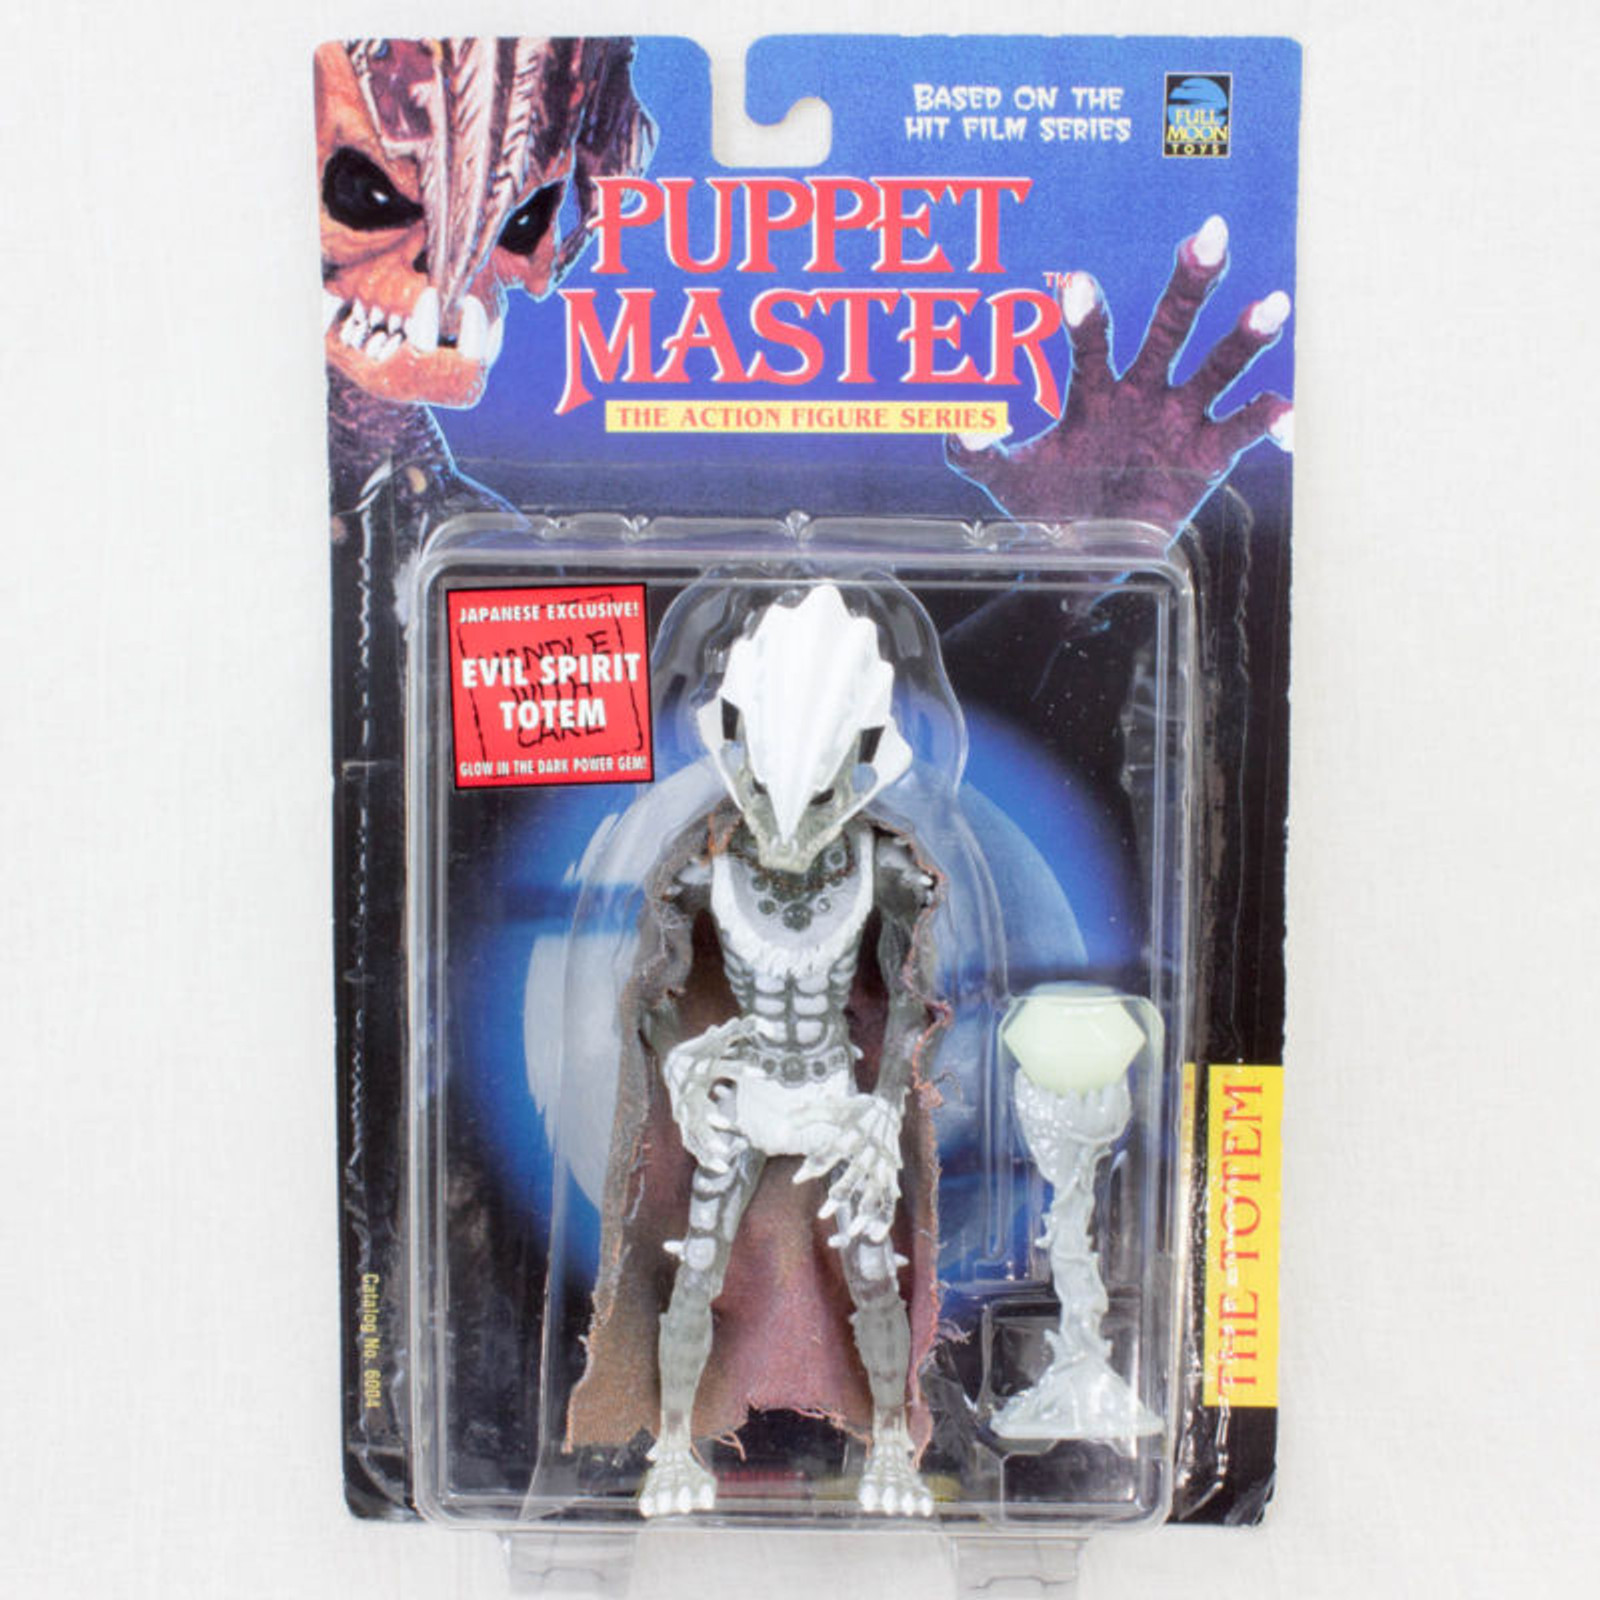 PUPPET MASTER Evil Spirit Totem Figure Japanese Exclusive Full Moon Toys